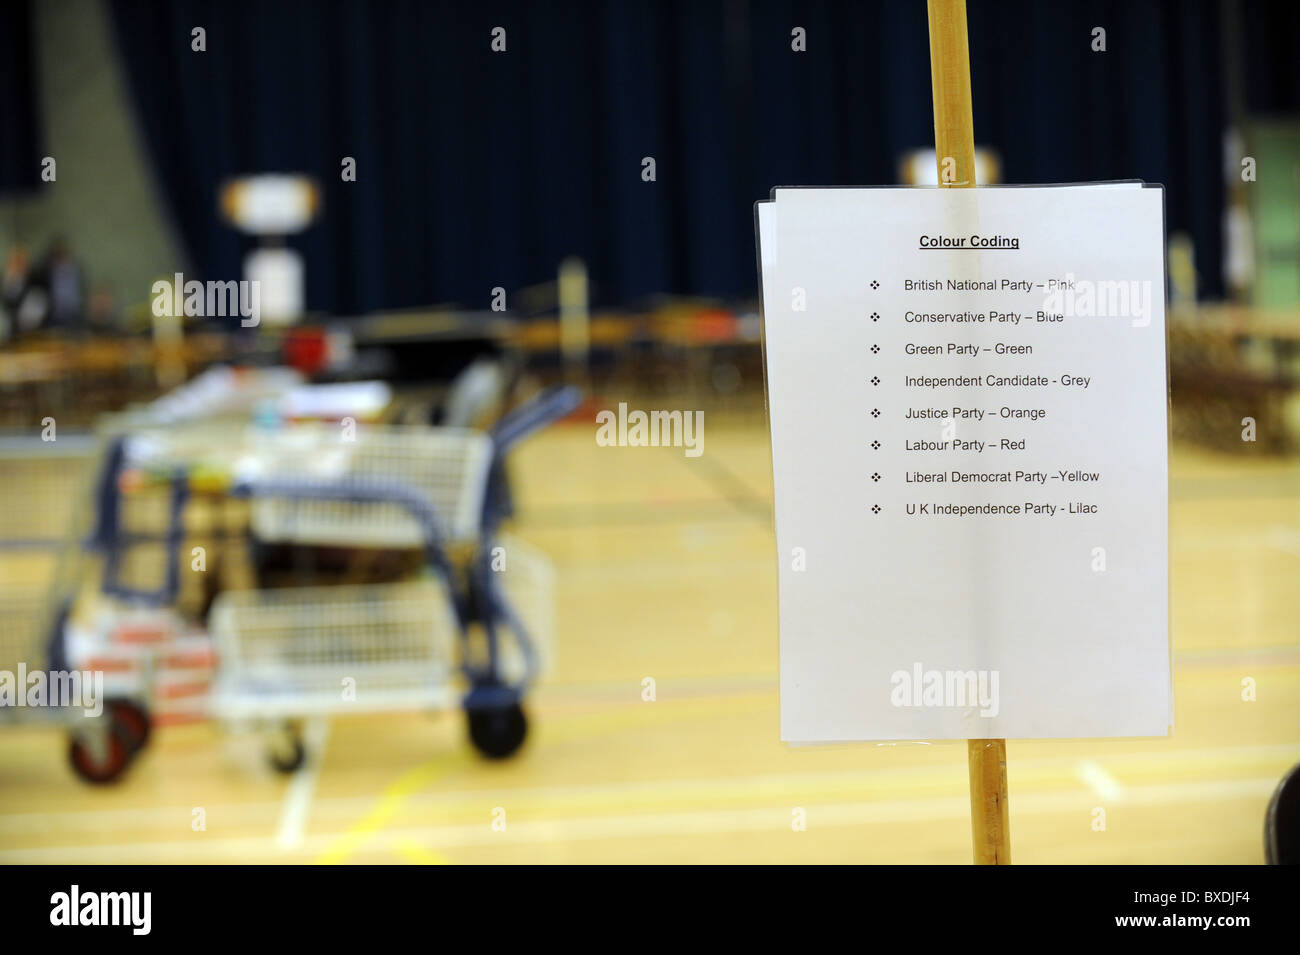 2010 General Election count held at the K2 Leisure Centre in Crawley - Colour codes for the count - Stock Image